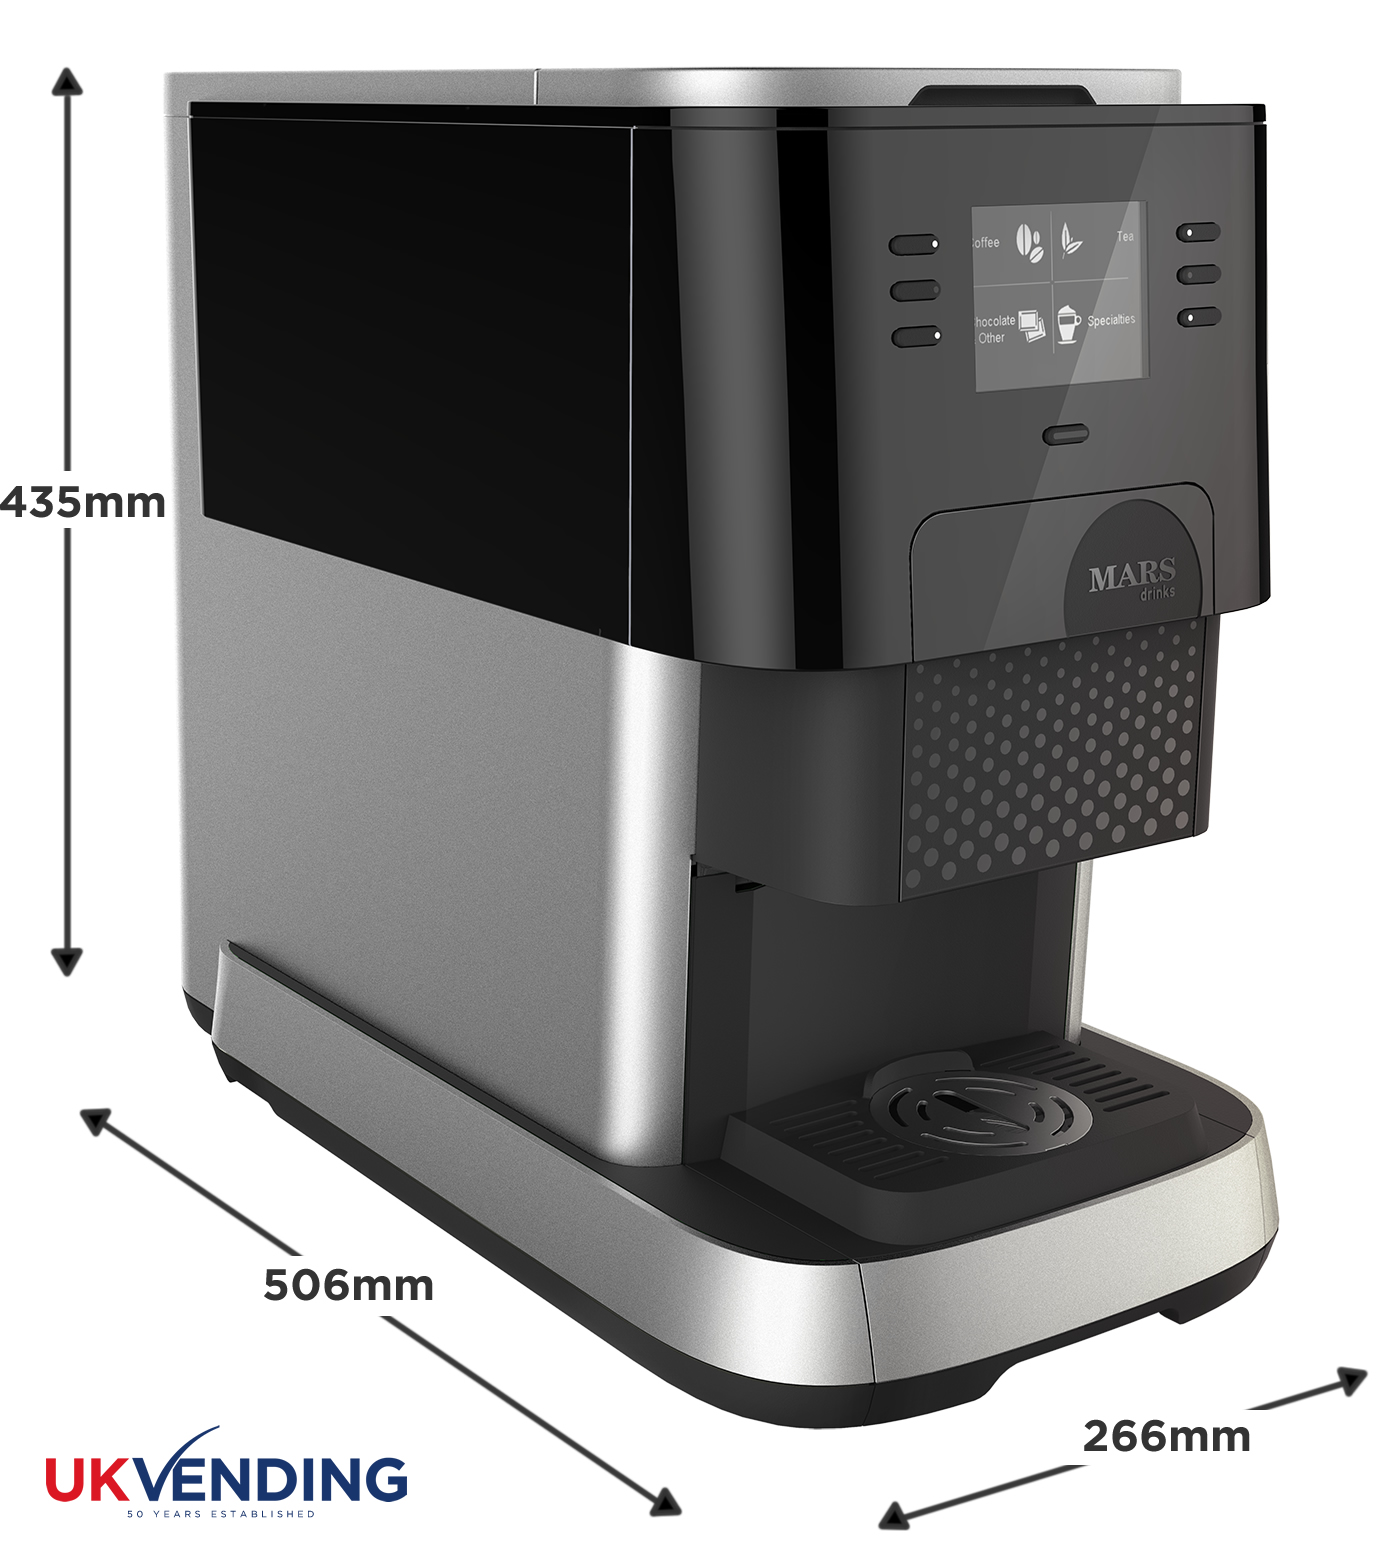 Dimensions Of Coffee Maker : Flavia Creation 500 office coffee machine UK Vending Ltd